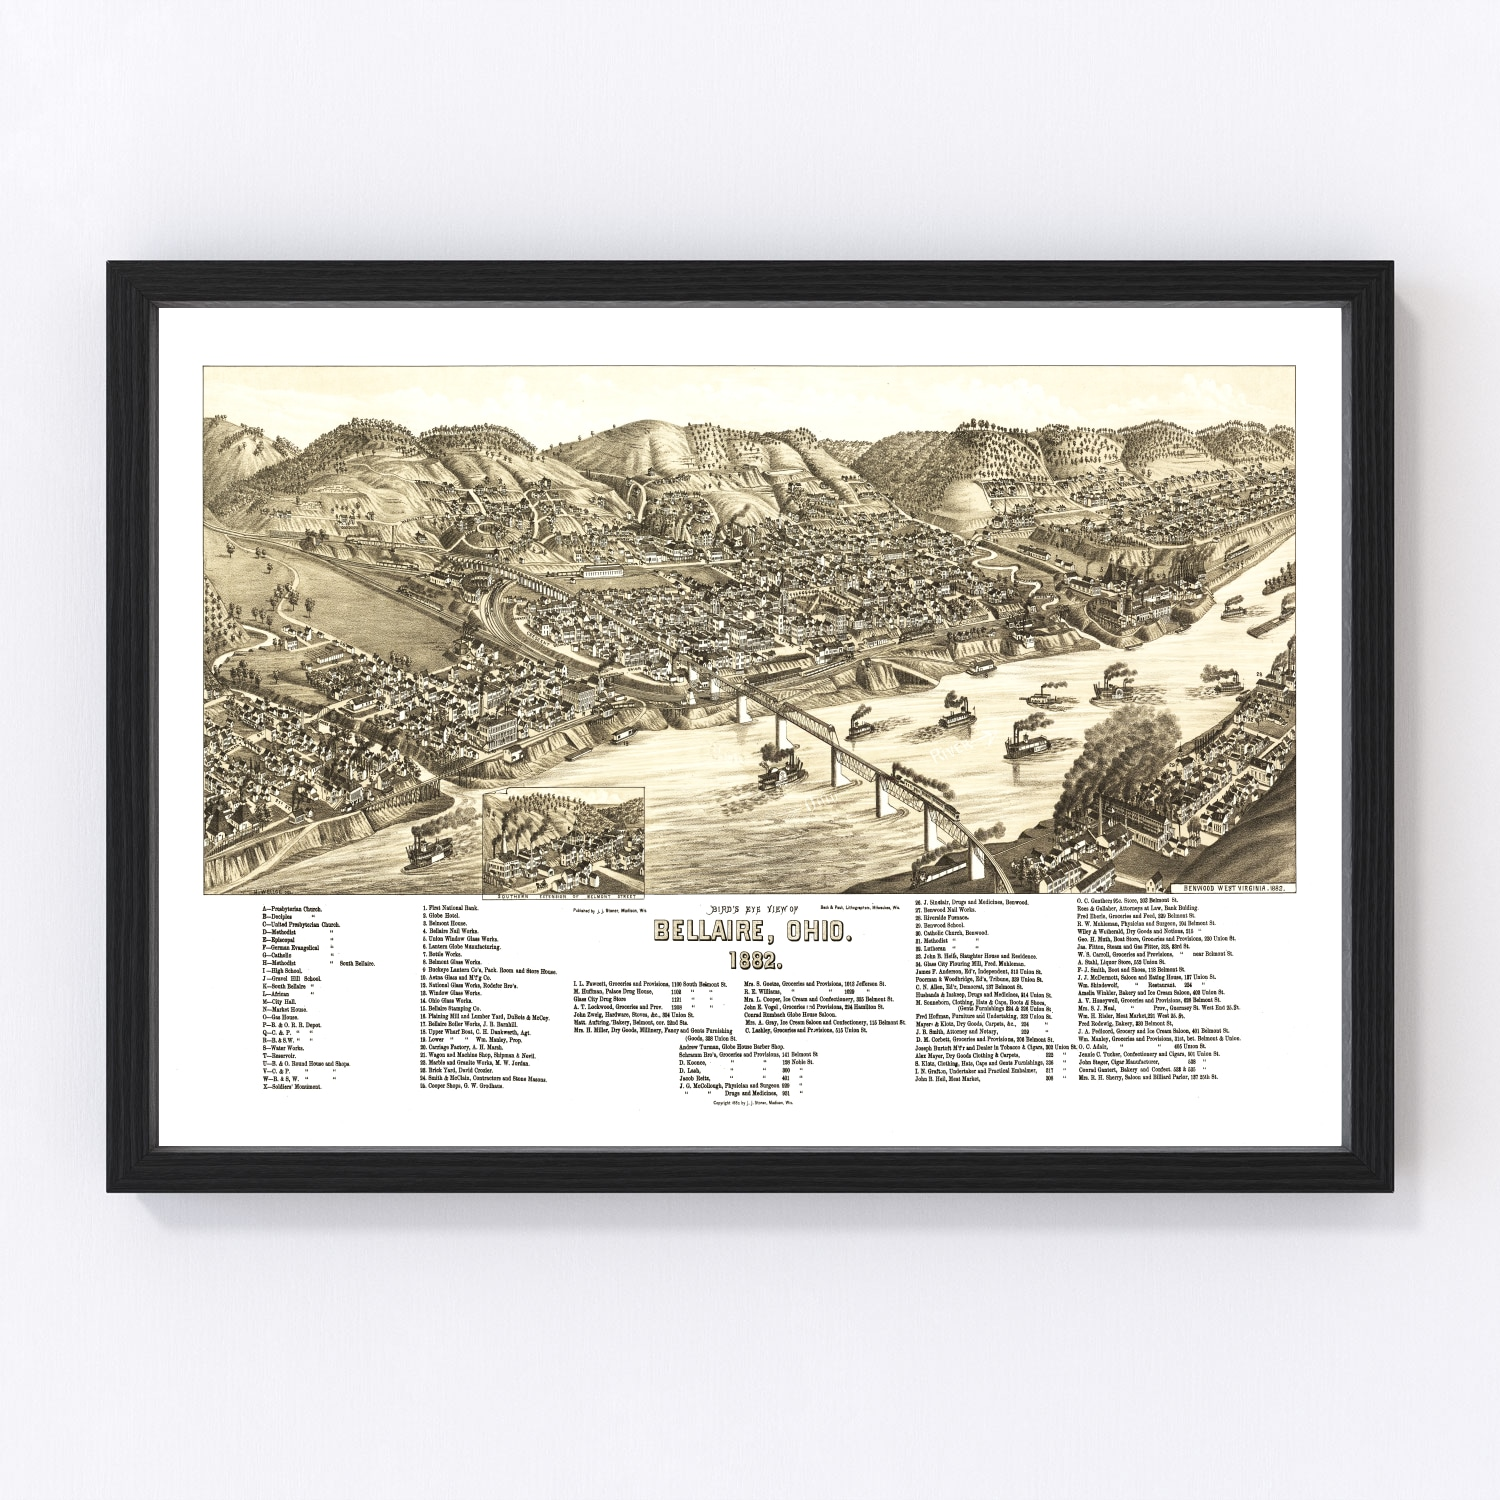 Vintage Map of Bellaire, Ohio 1882